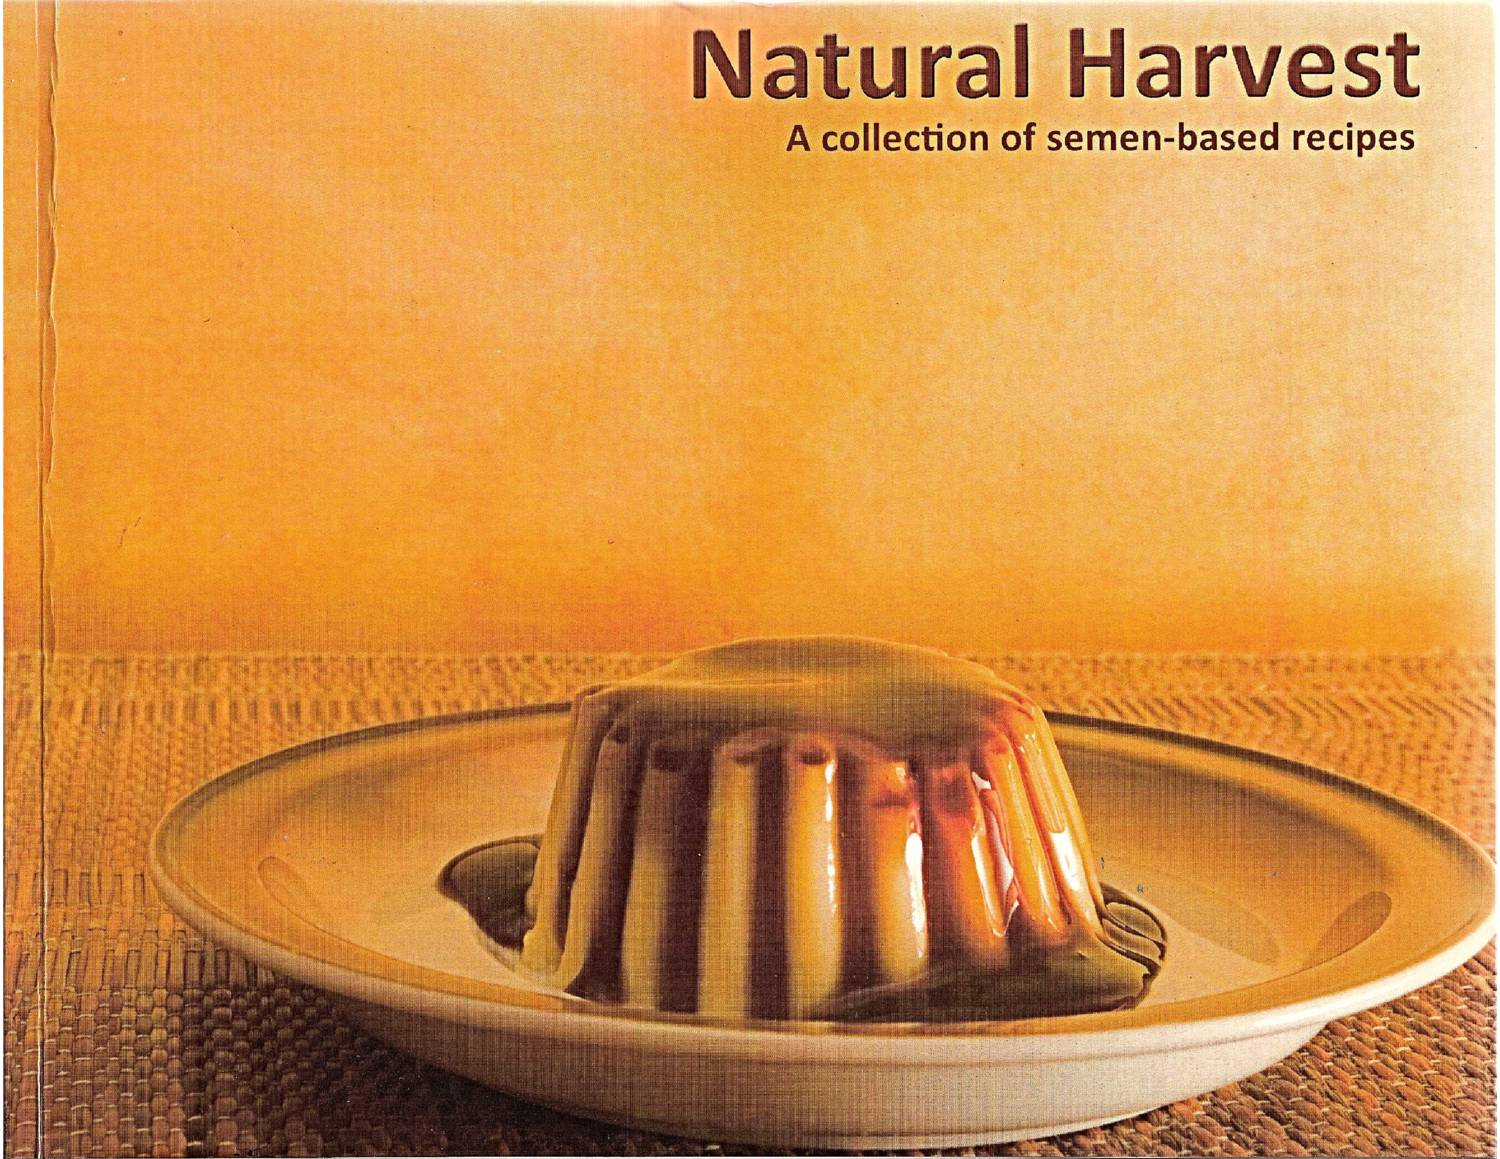 Natural harvest a collection of semen-based recipes